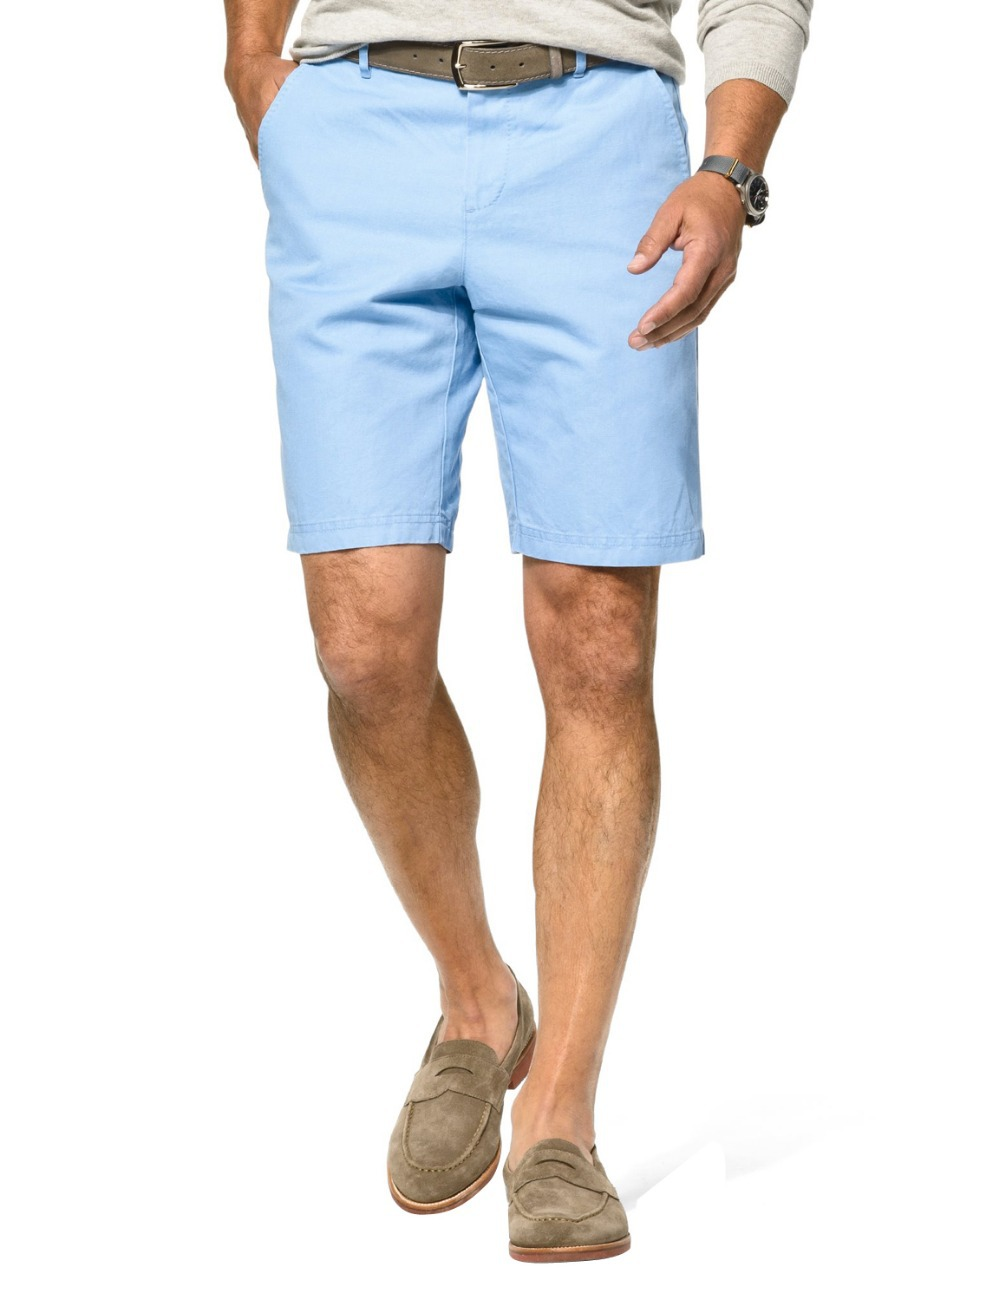 Men's Light Blue Trousers New 2015 Men Summer Swimmer Short Brand ...